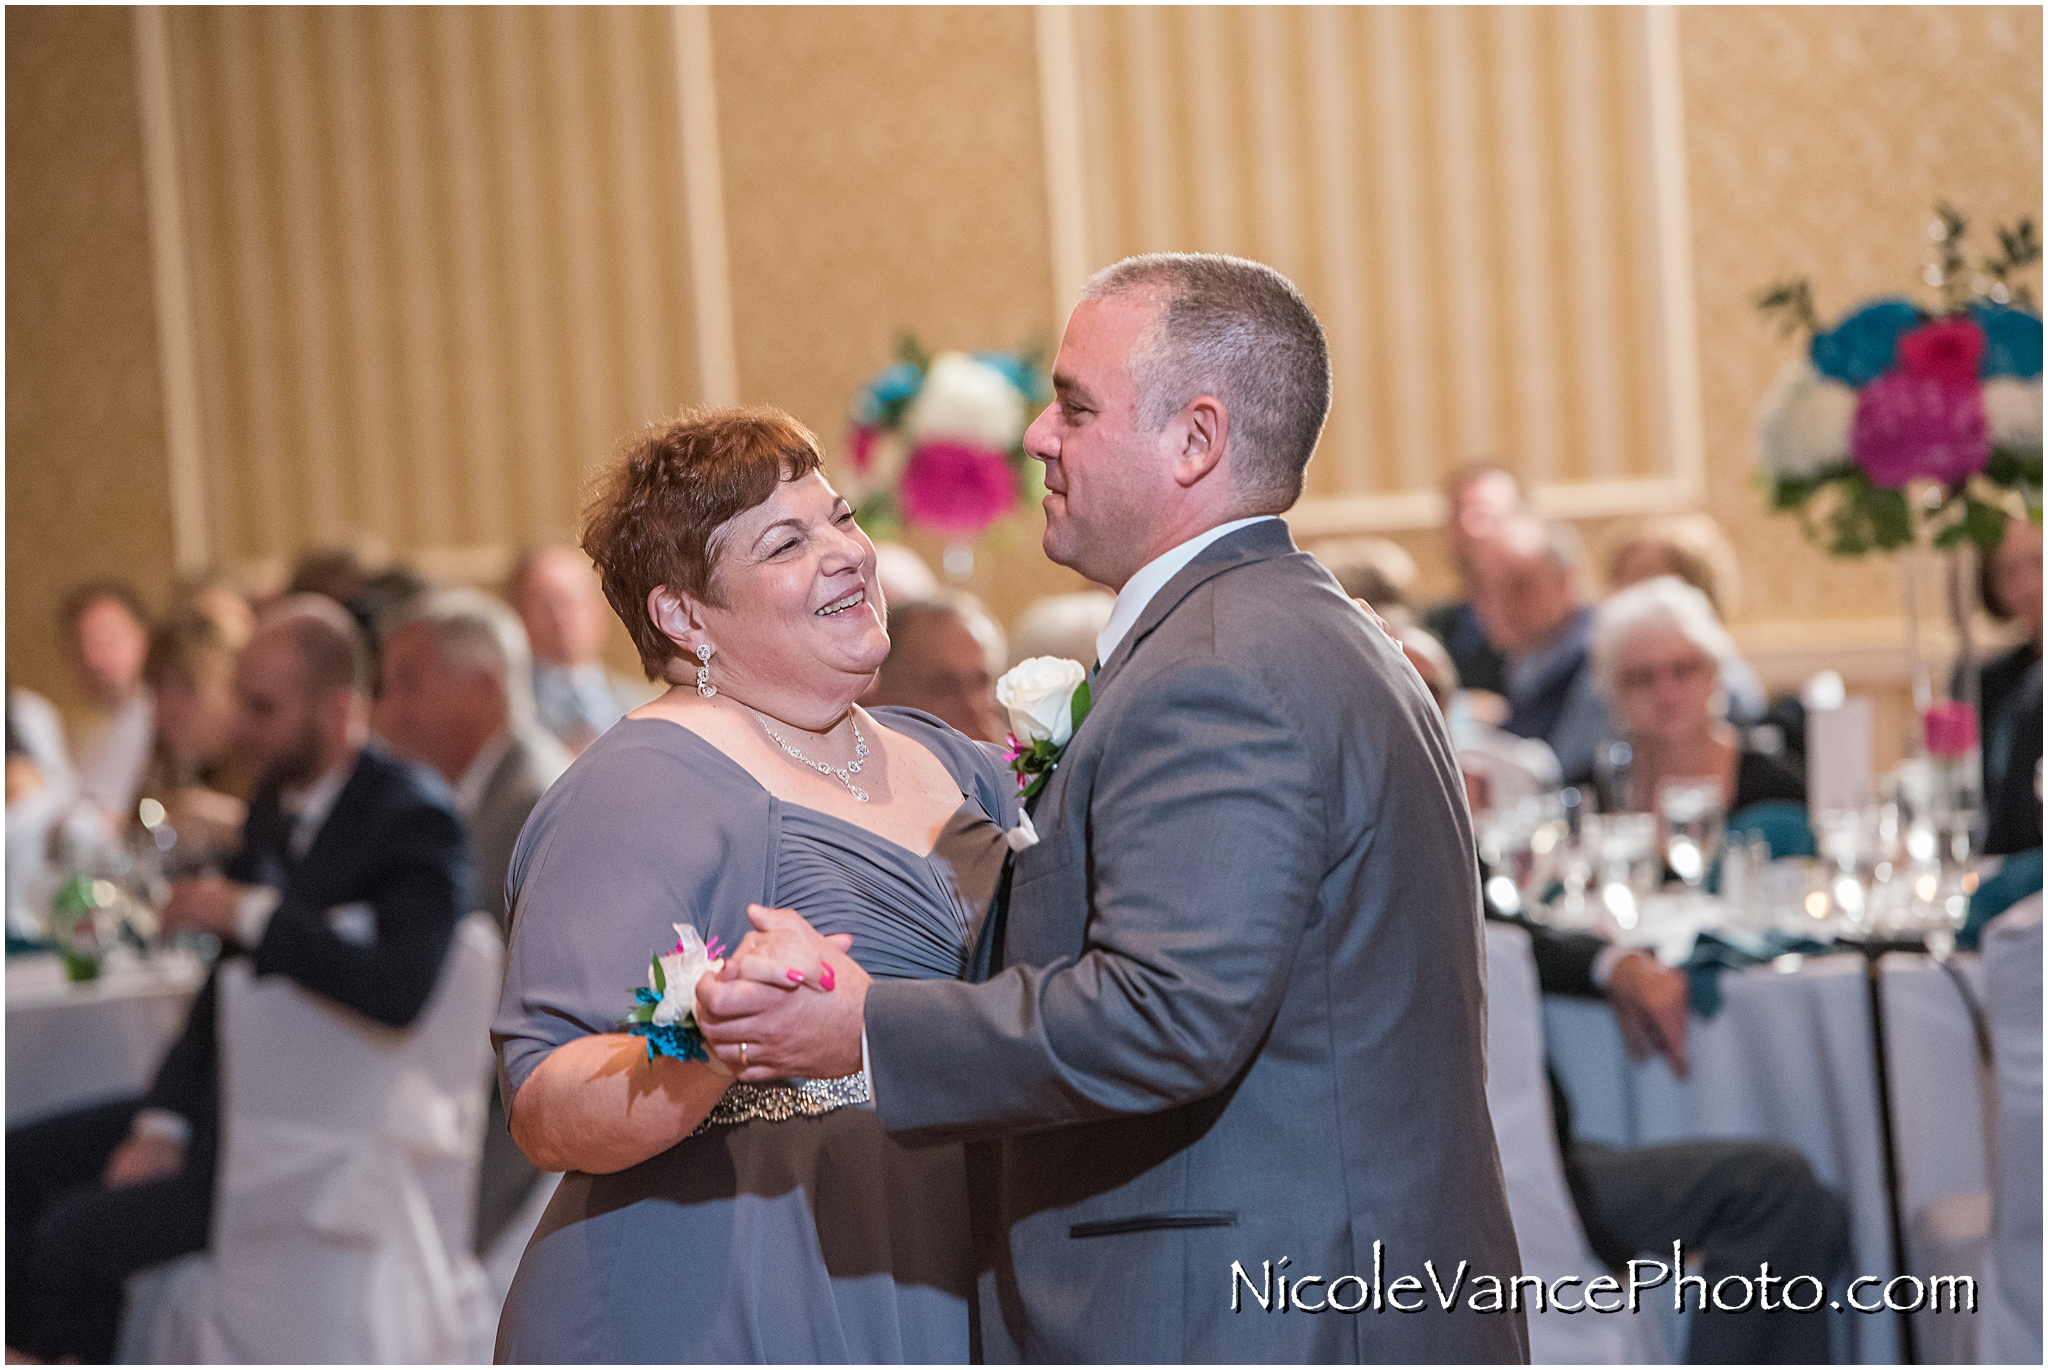 The groom dances with his new mother in law in the ballroom at Virginia Crossings.